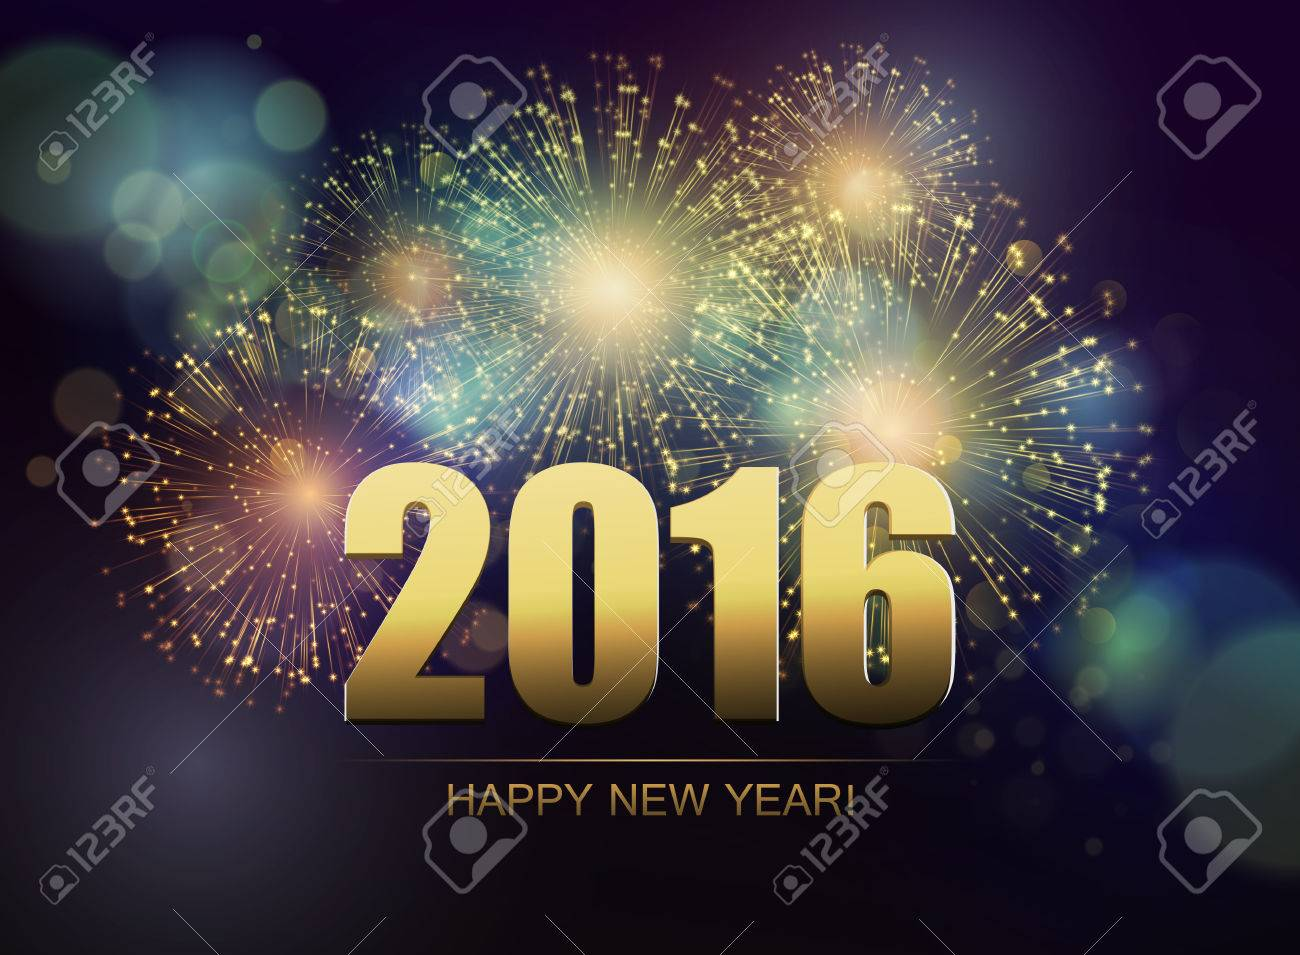 vector holiday fireworks background happy new year 2016 royalty